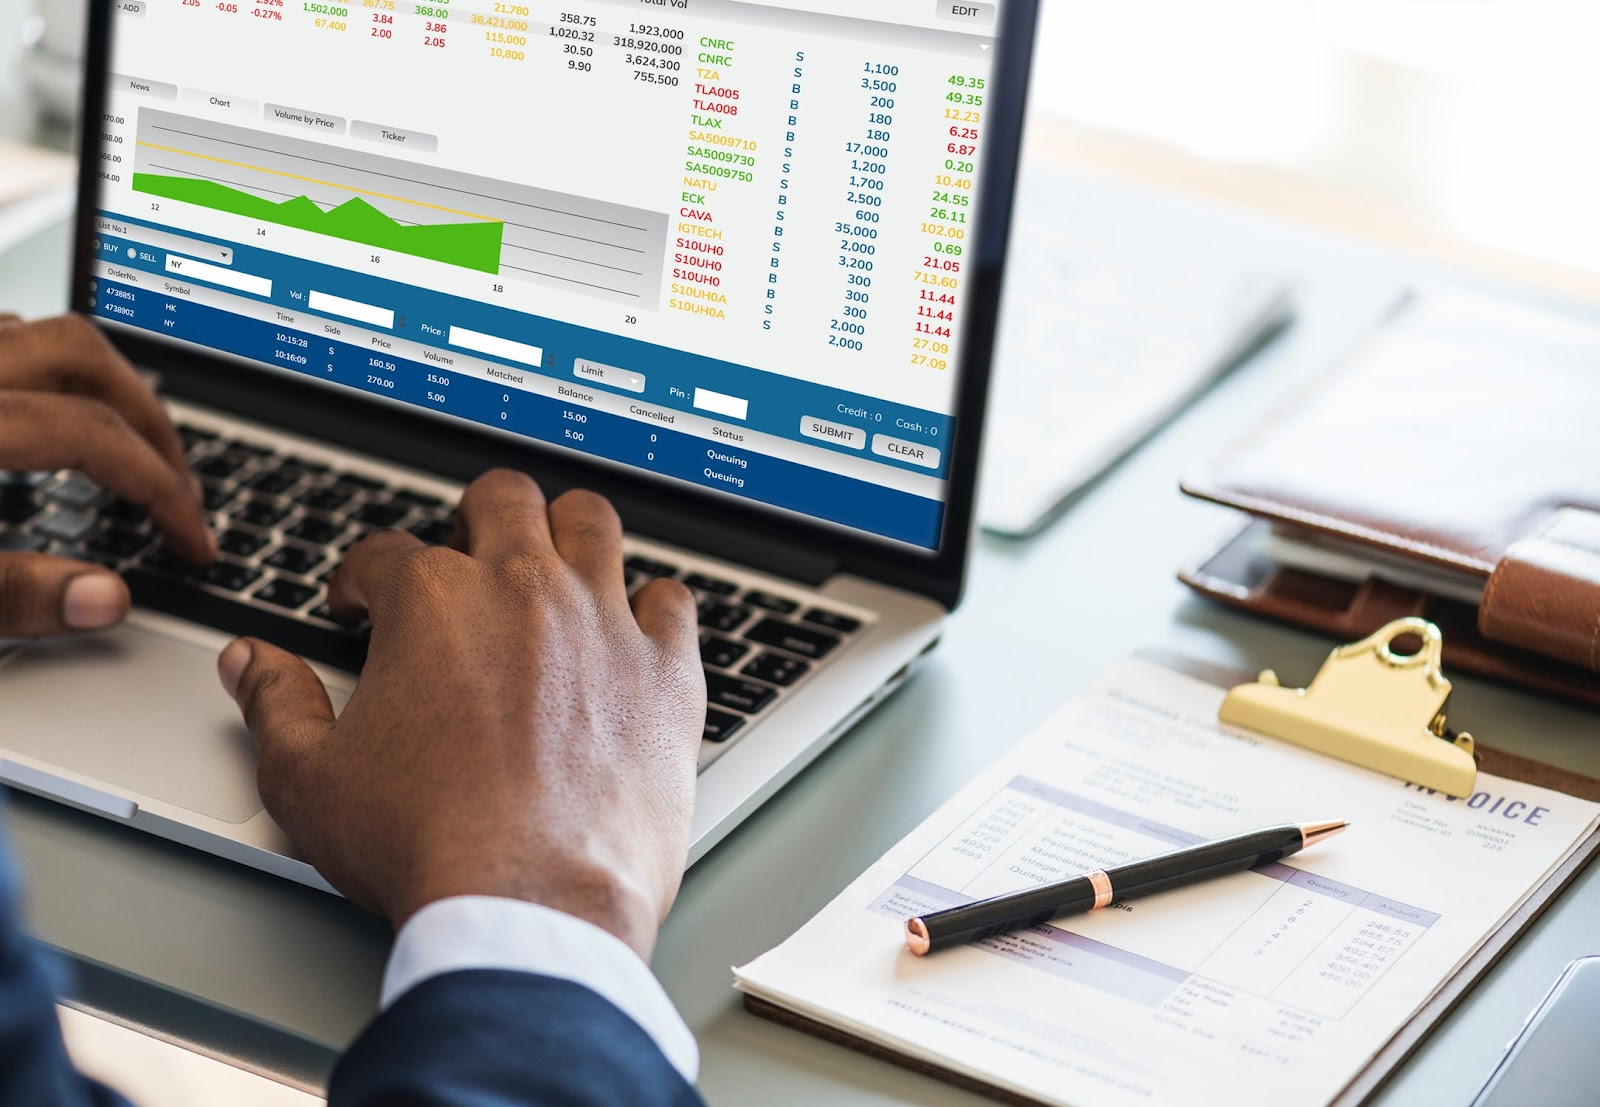 Tips to Improve Your Accounting and Finance Systems | Personal Finance Blog - Tips & Advice from UnitedFinances.com